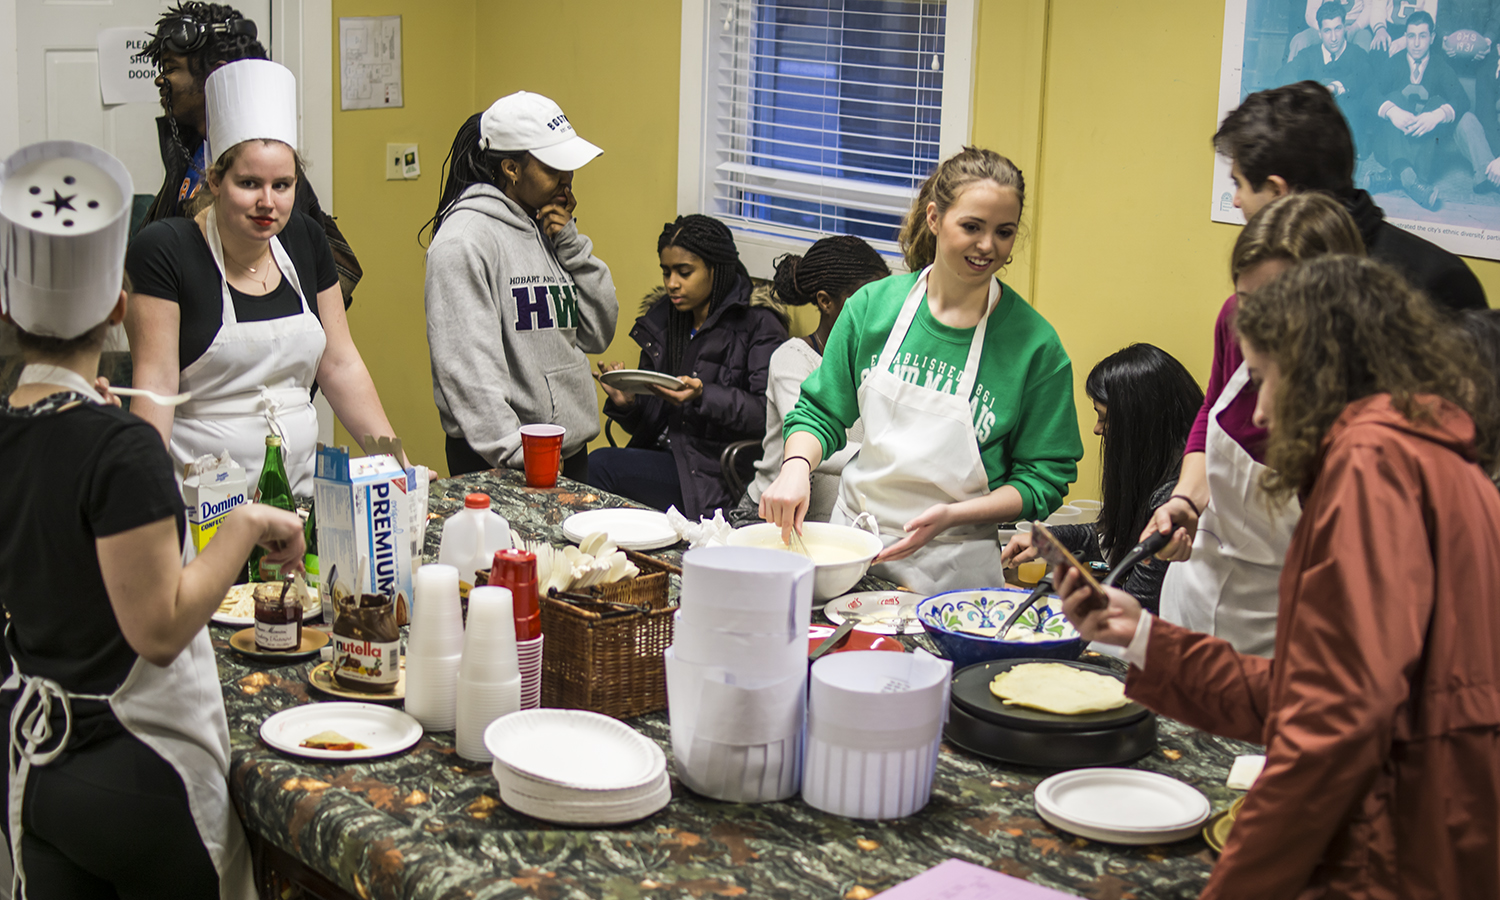 Members of the HWS French Club make crepes during a club meeting in the Office of Intercultural Affairs.